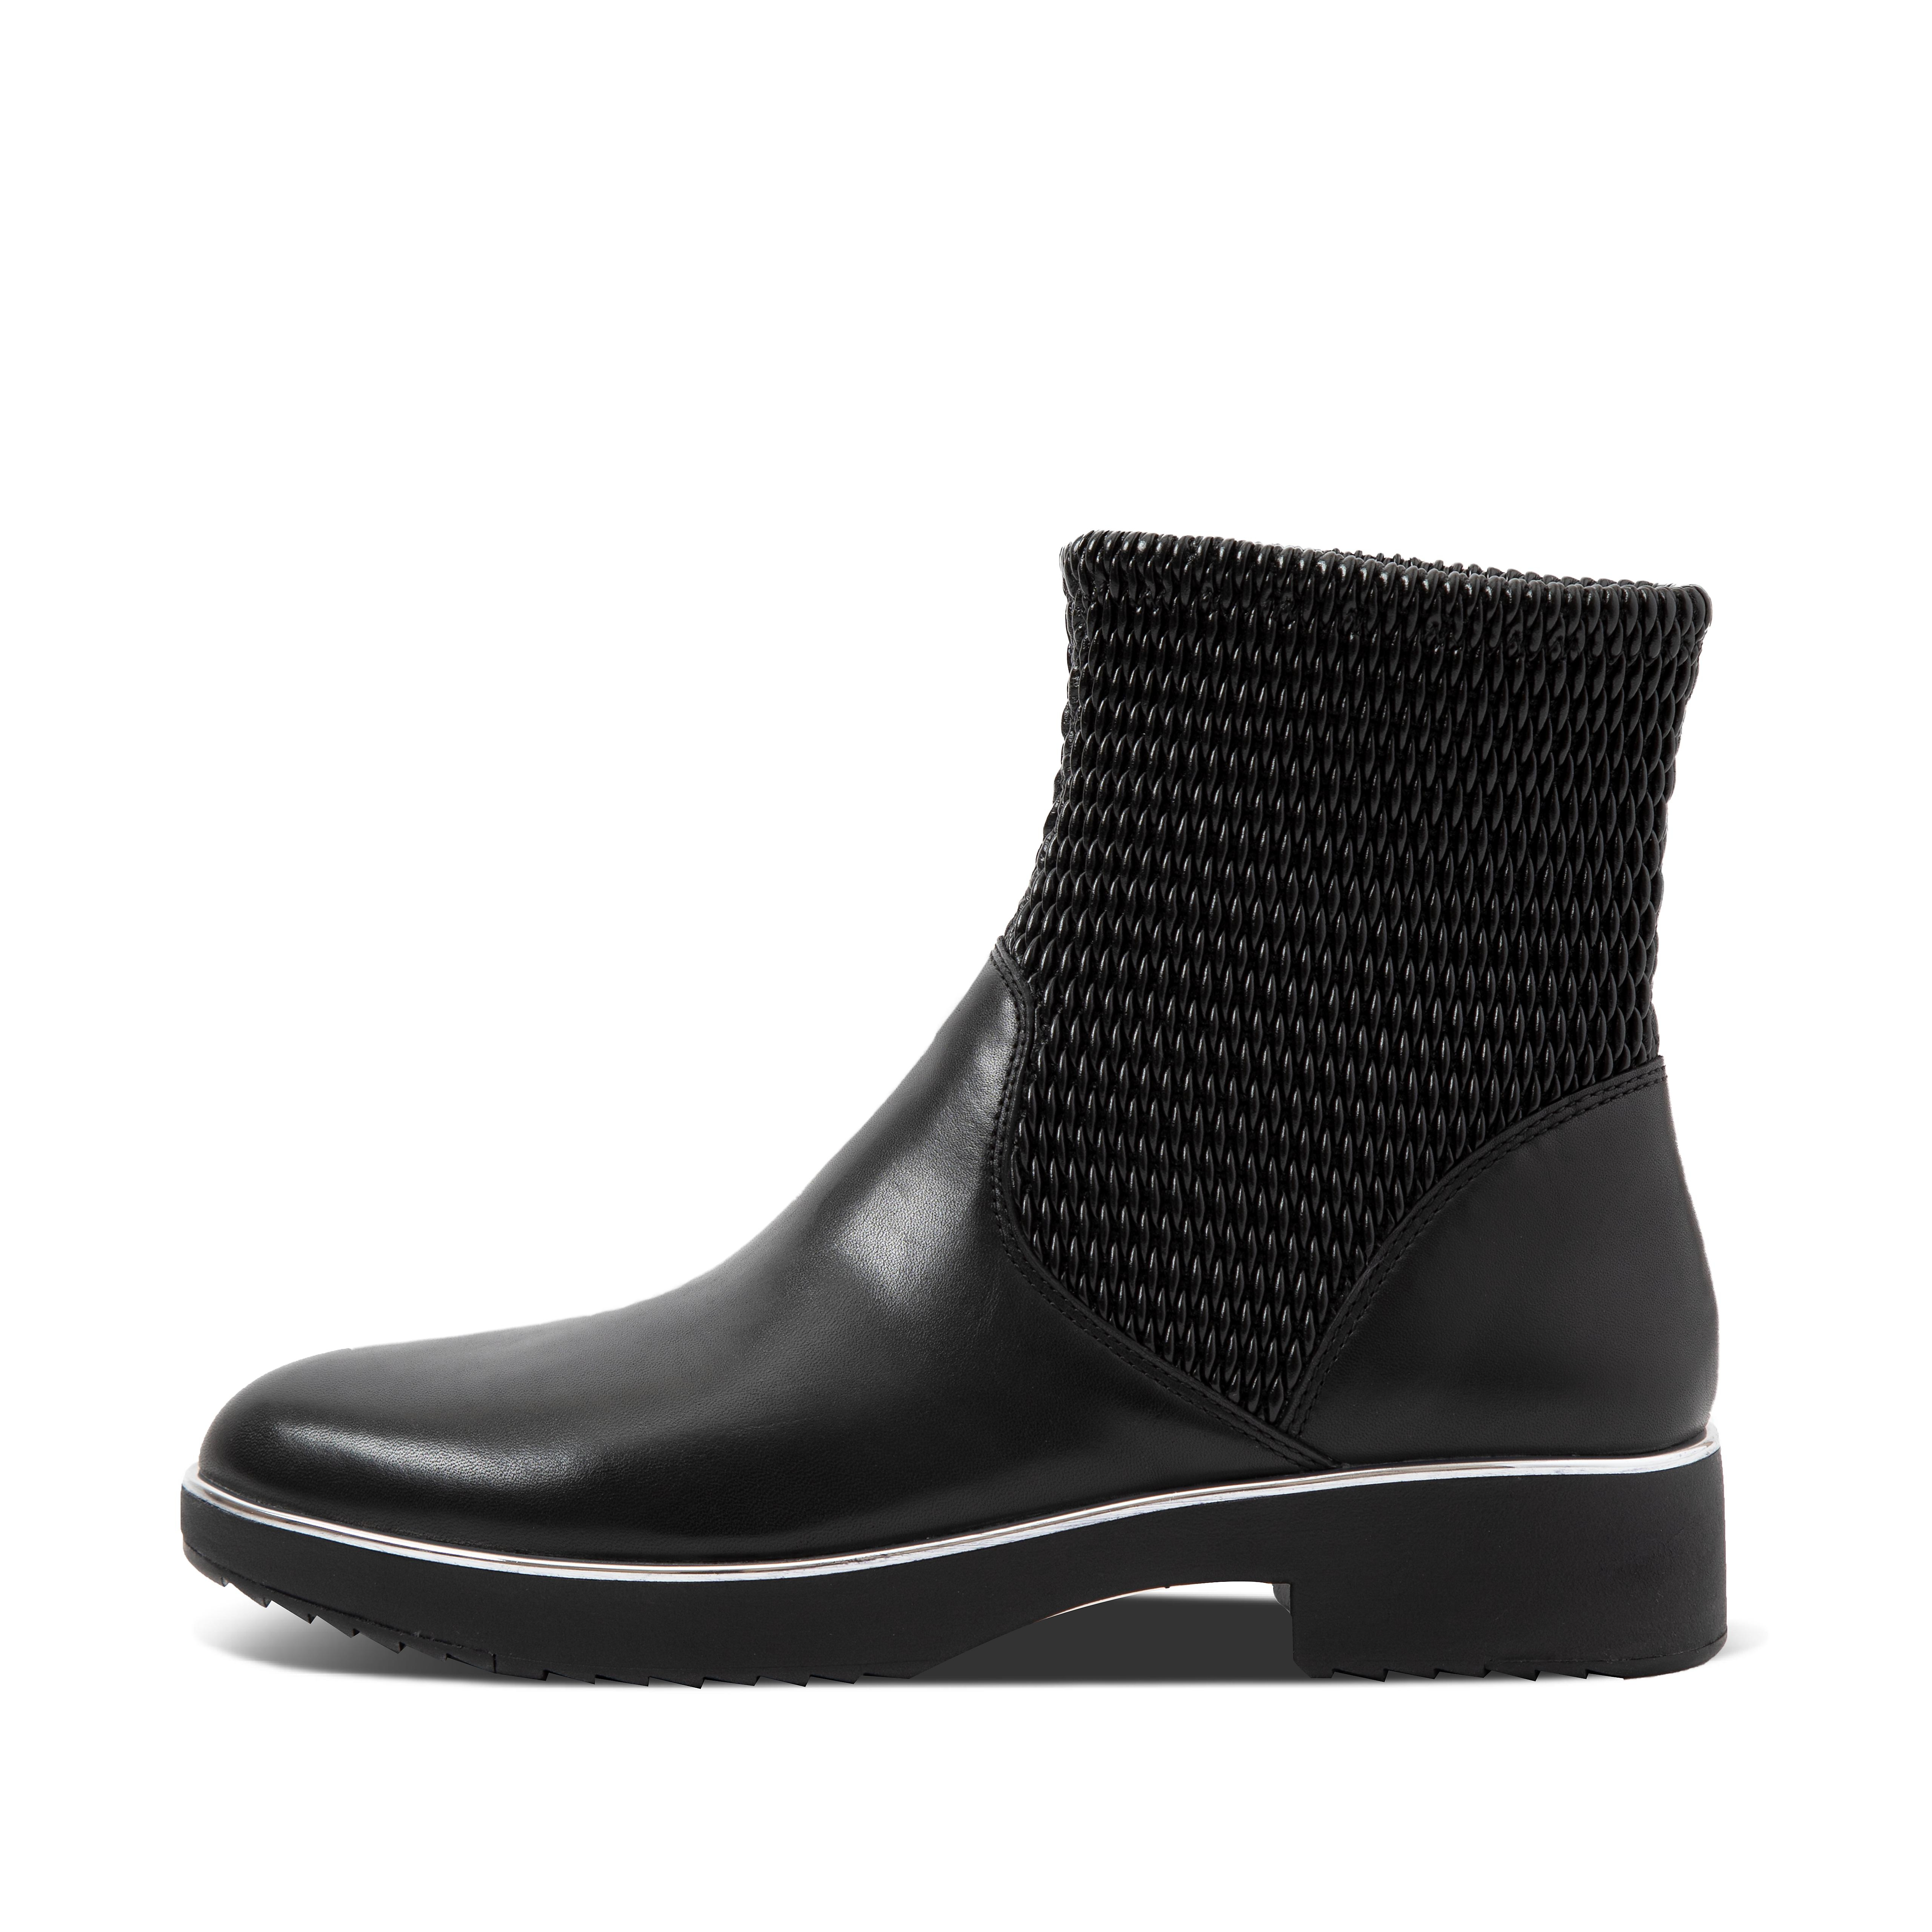 These sleek slip-on boots will instantly raise your style game. They\\\'ve got texture - mixing smooth leather with stretchy waffle-pattern faux-leather that hugs the ankle. And there\\\'s a shiny metal trim edging the sole for subtle detailing. The comfort is elevated too, thanks to the smart heeled version of our all-day cushioning Supercom FF™ midsoles. Need good looking boots that are also great to walk in? Your search is over. Here in an ankle version.